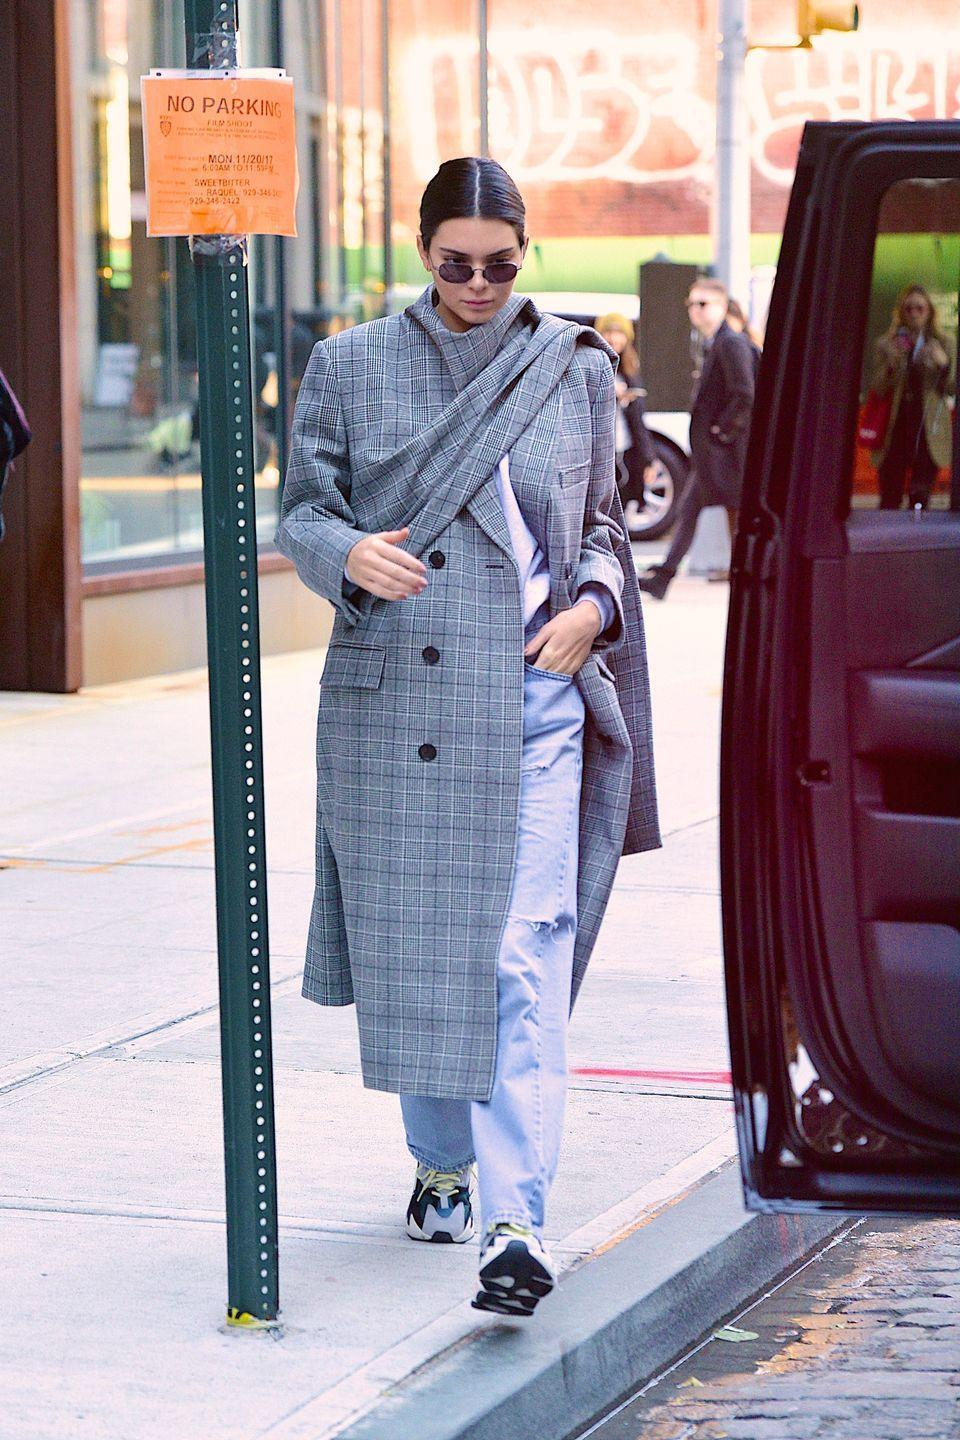 <p>Kendall Jenner works a Balenciaga plaid coat with Yeezy jeans while out and about in New York, November 2017</p>